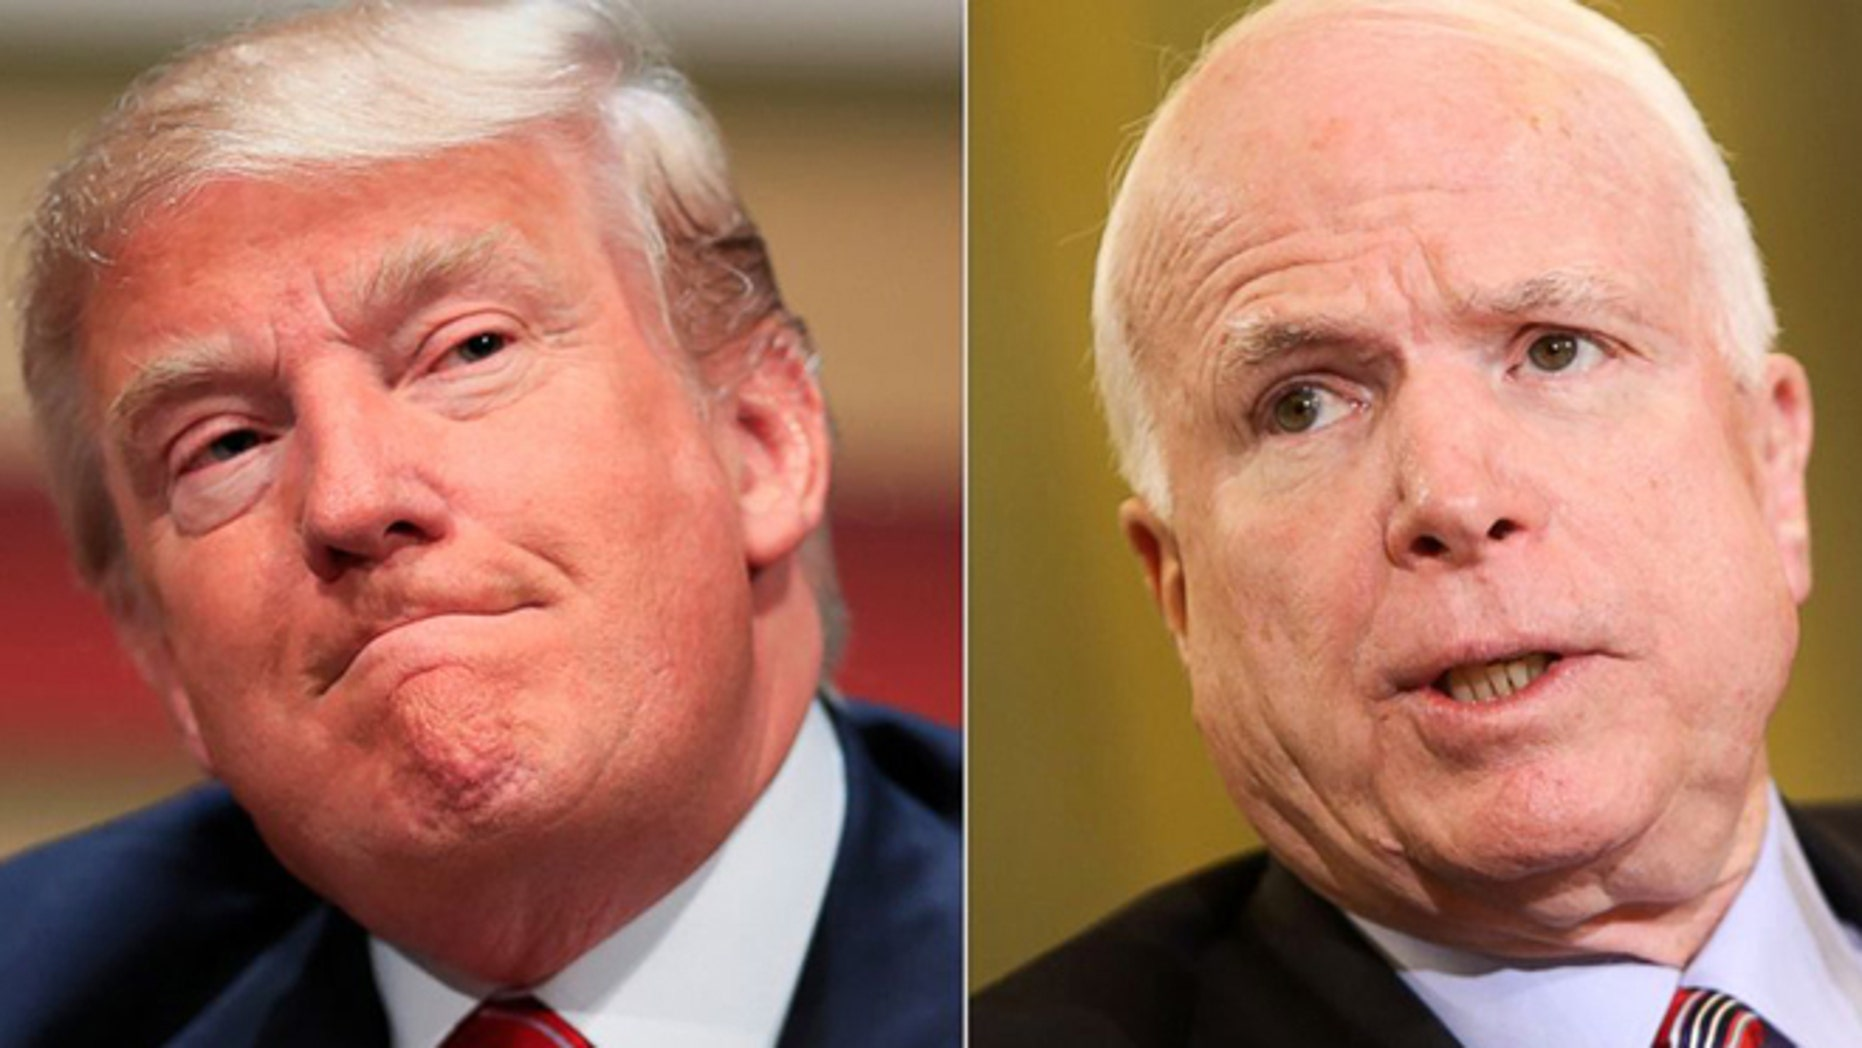 Arizona GOP Sen. John McCain, right, a Vietnam war prisoner, on Saturday criticized President Trump, left, for failing to mention Vietnam's ongoing human rights violations while visiting Da Nang.